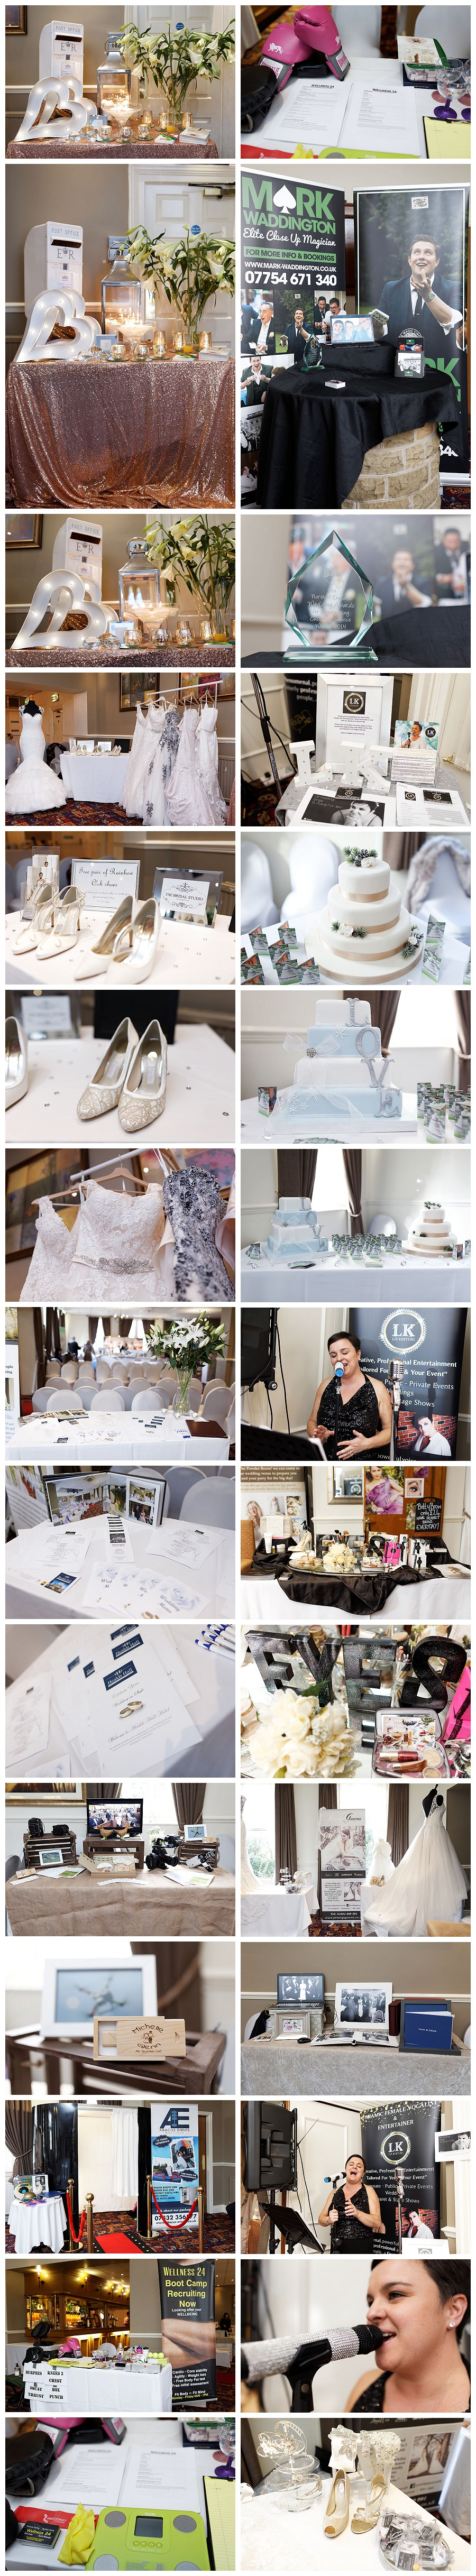 Healds Hall Hotel Weddings, wedding photographer Healds hall liversedge